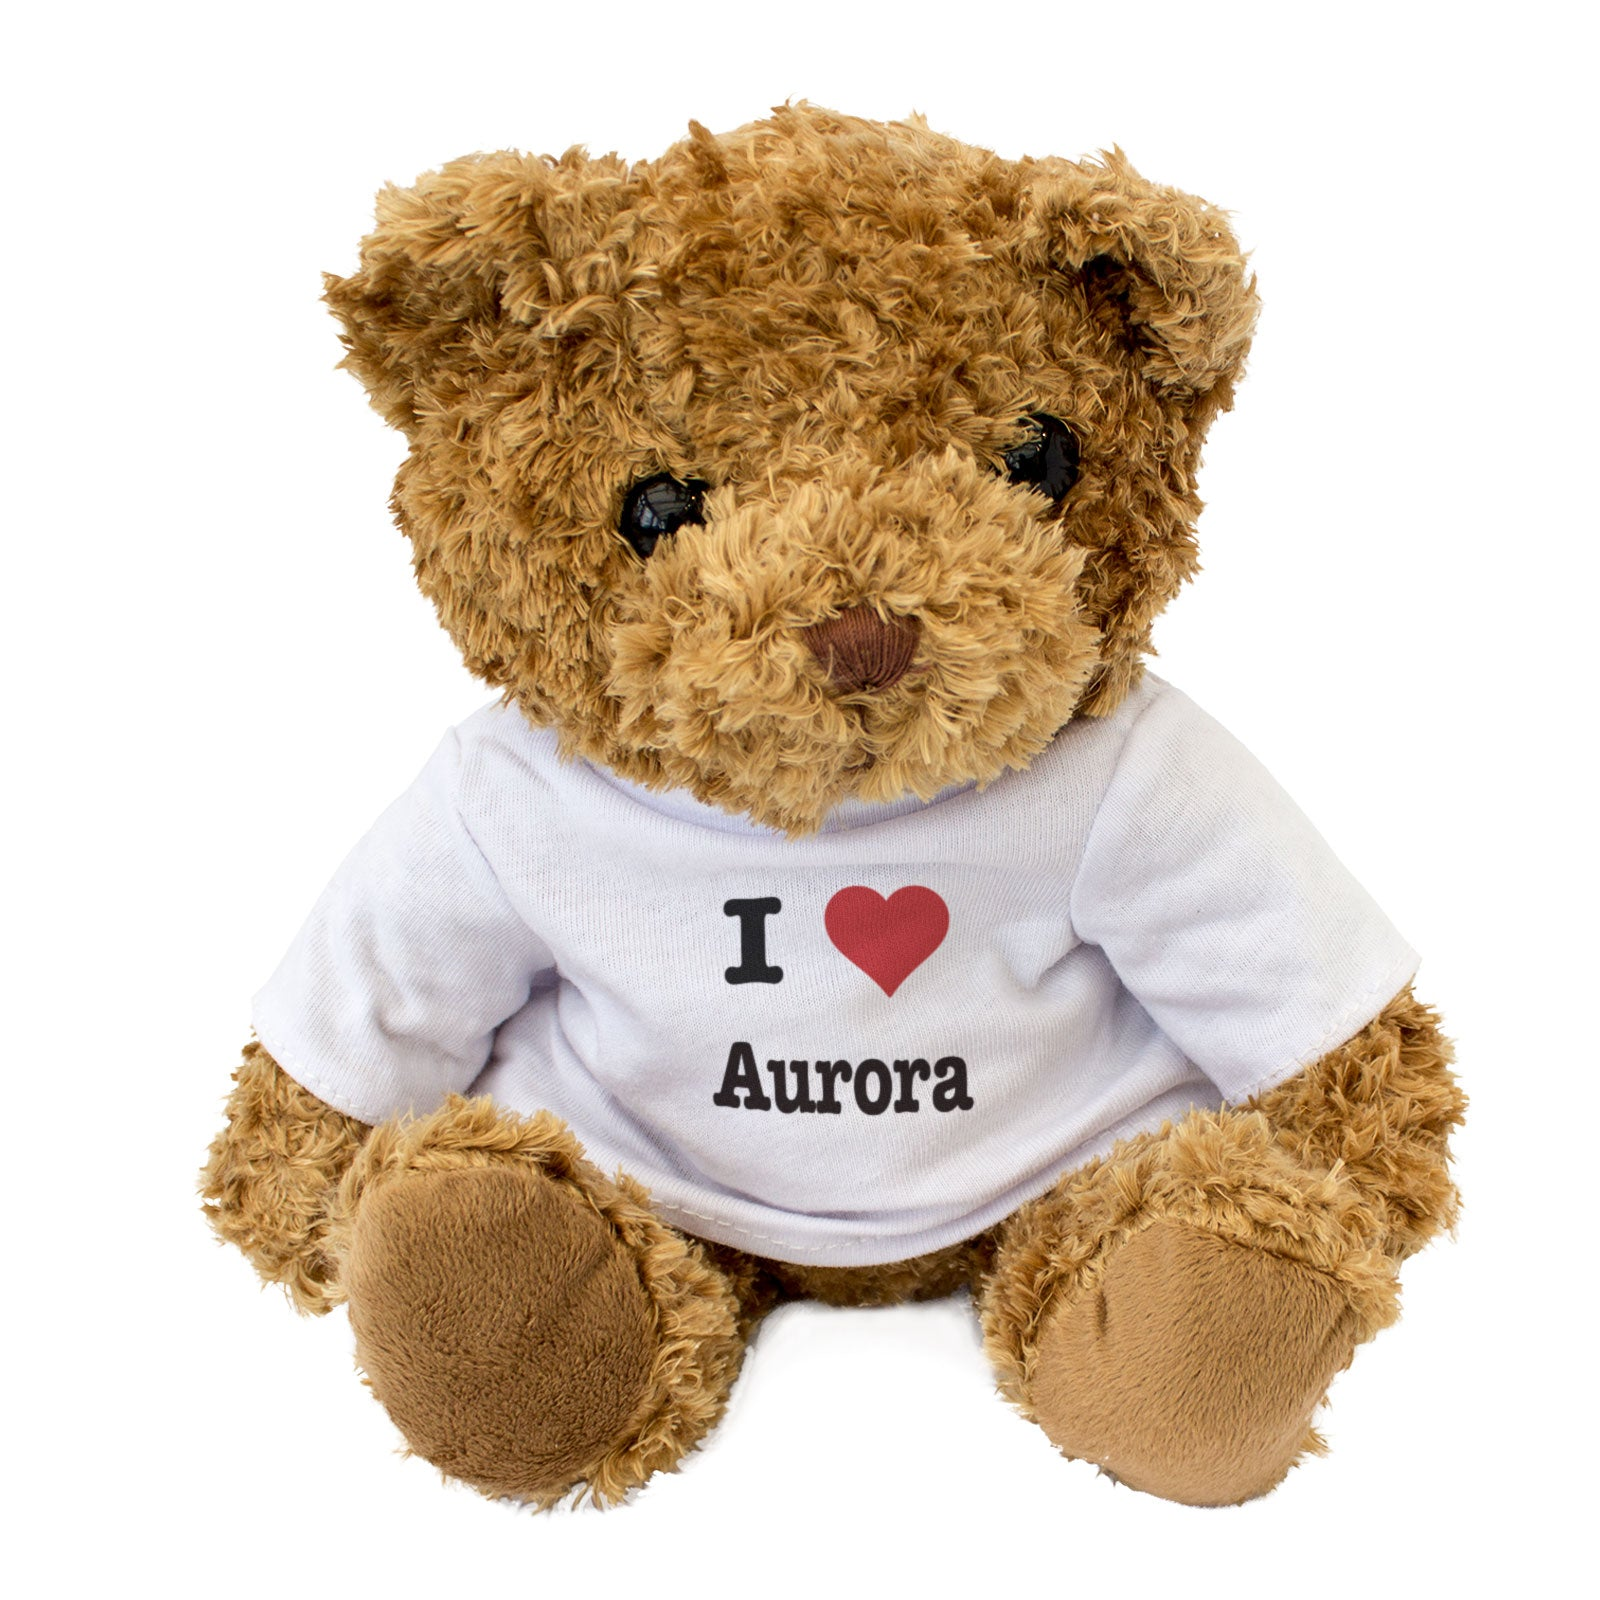 I Love Aurora - Teddy Bear